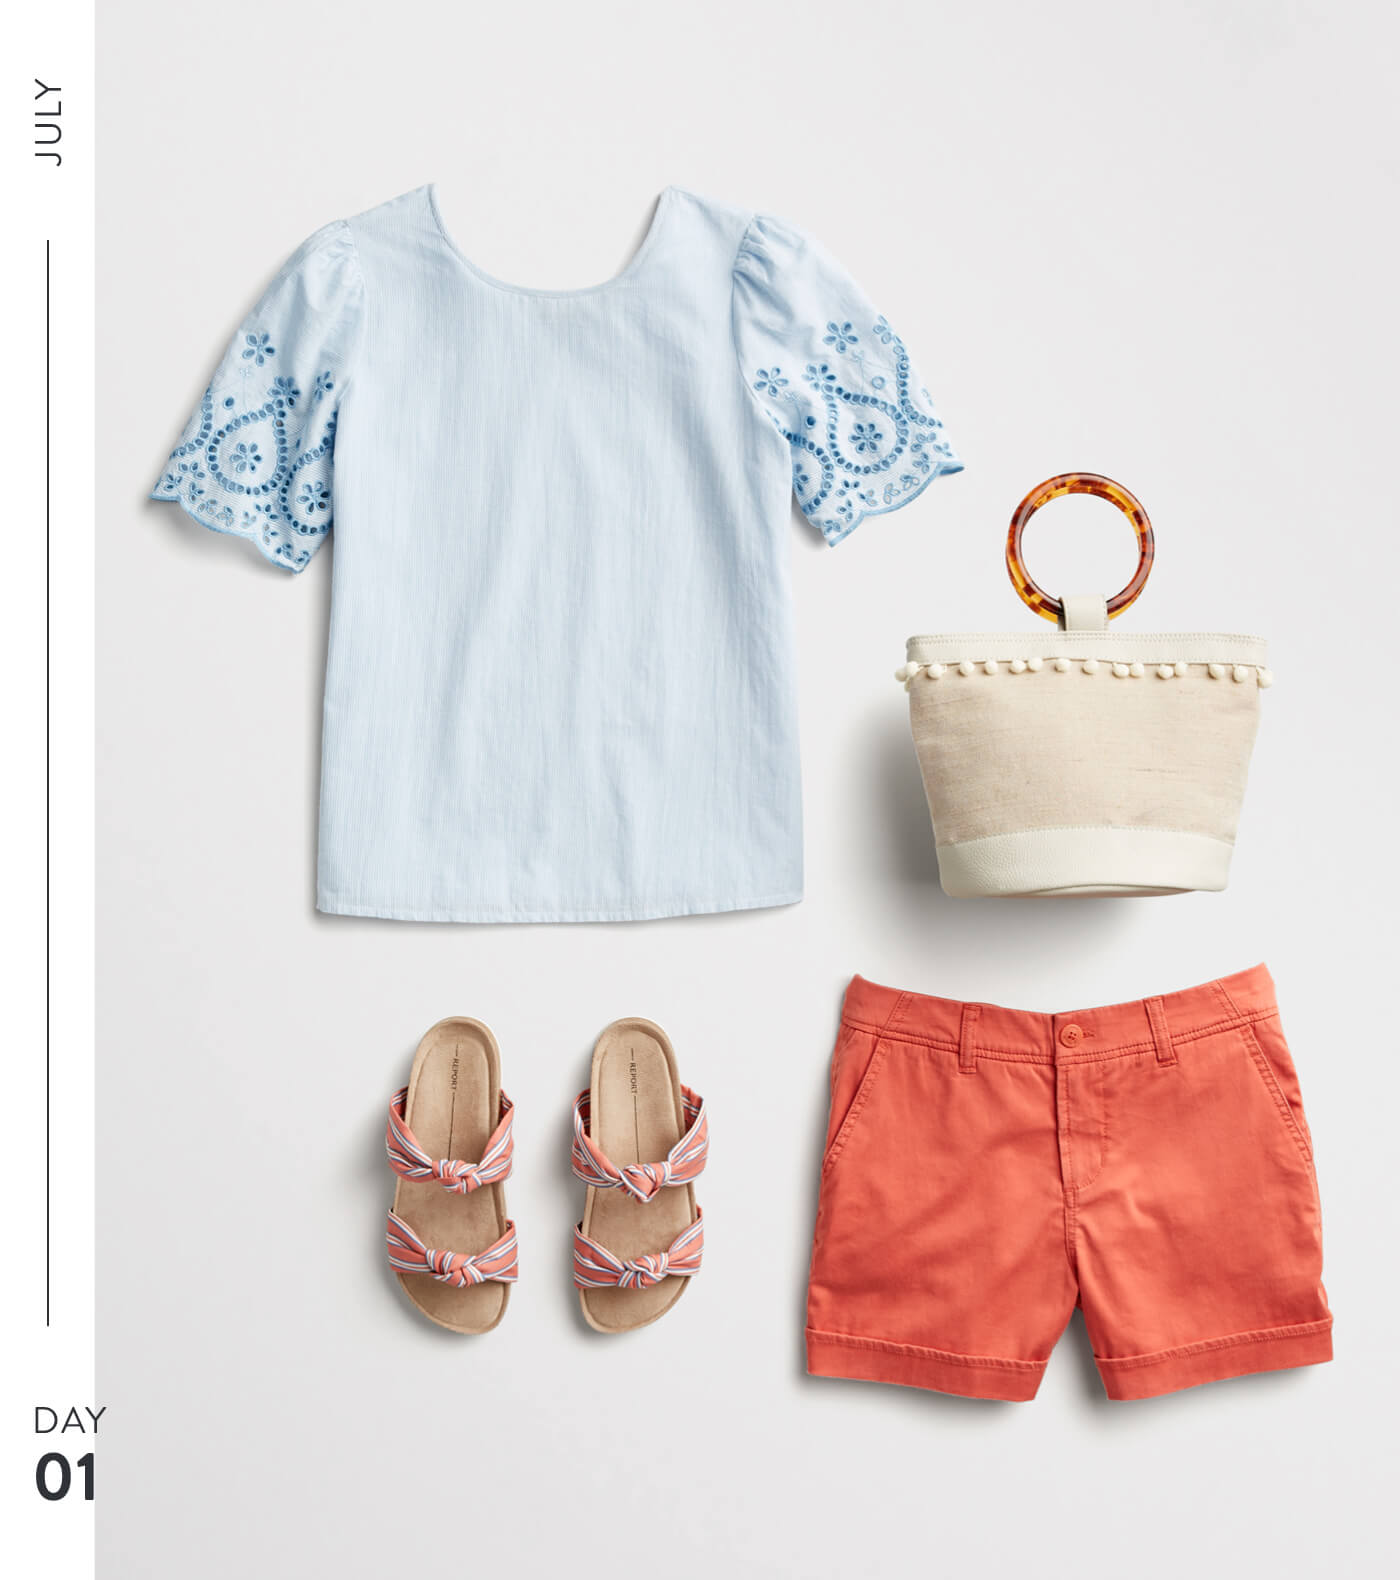 T3_W19_BLG_July-Month-of-Outfits-_357260432_1